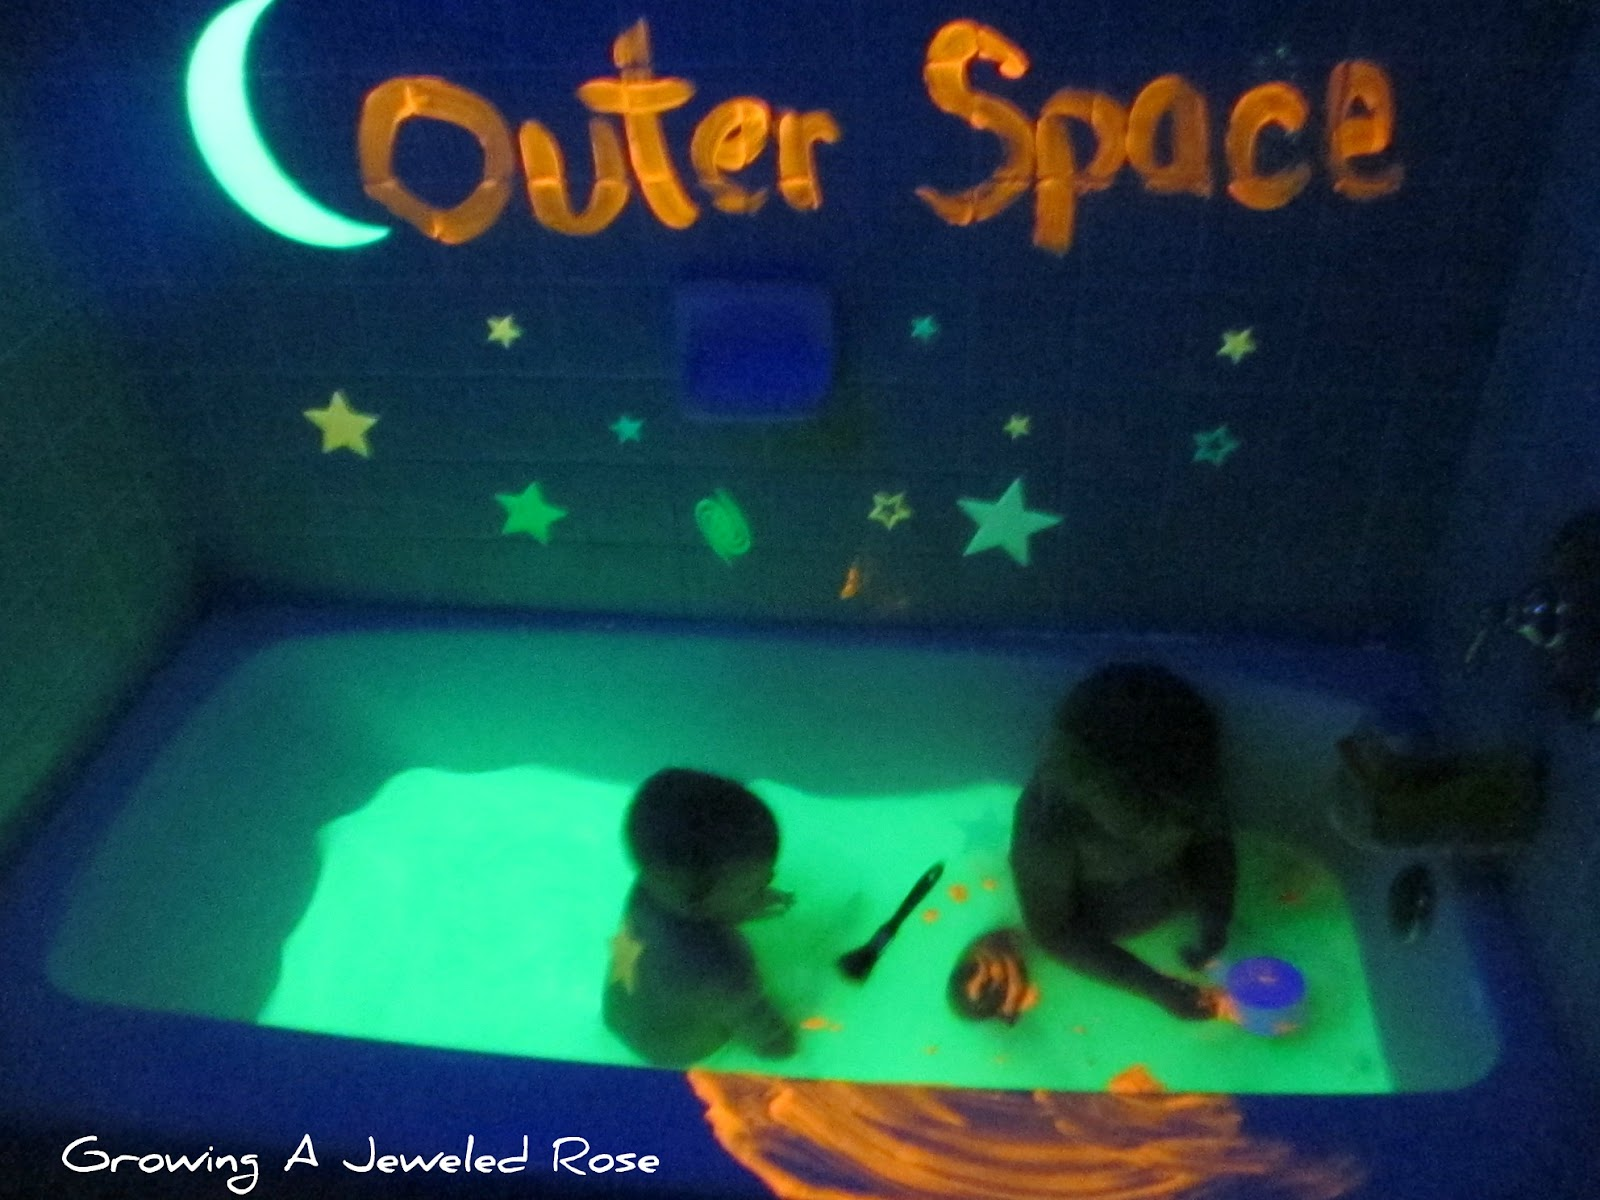 Outer space themed bath growing a jeweled rose for Outer space theme